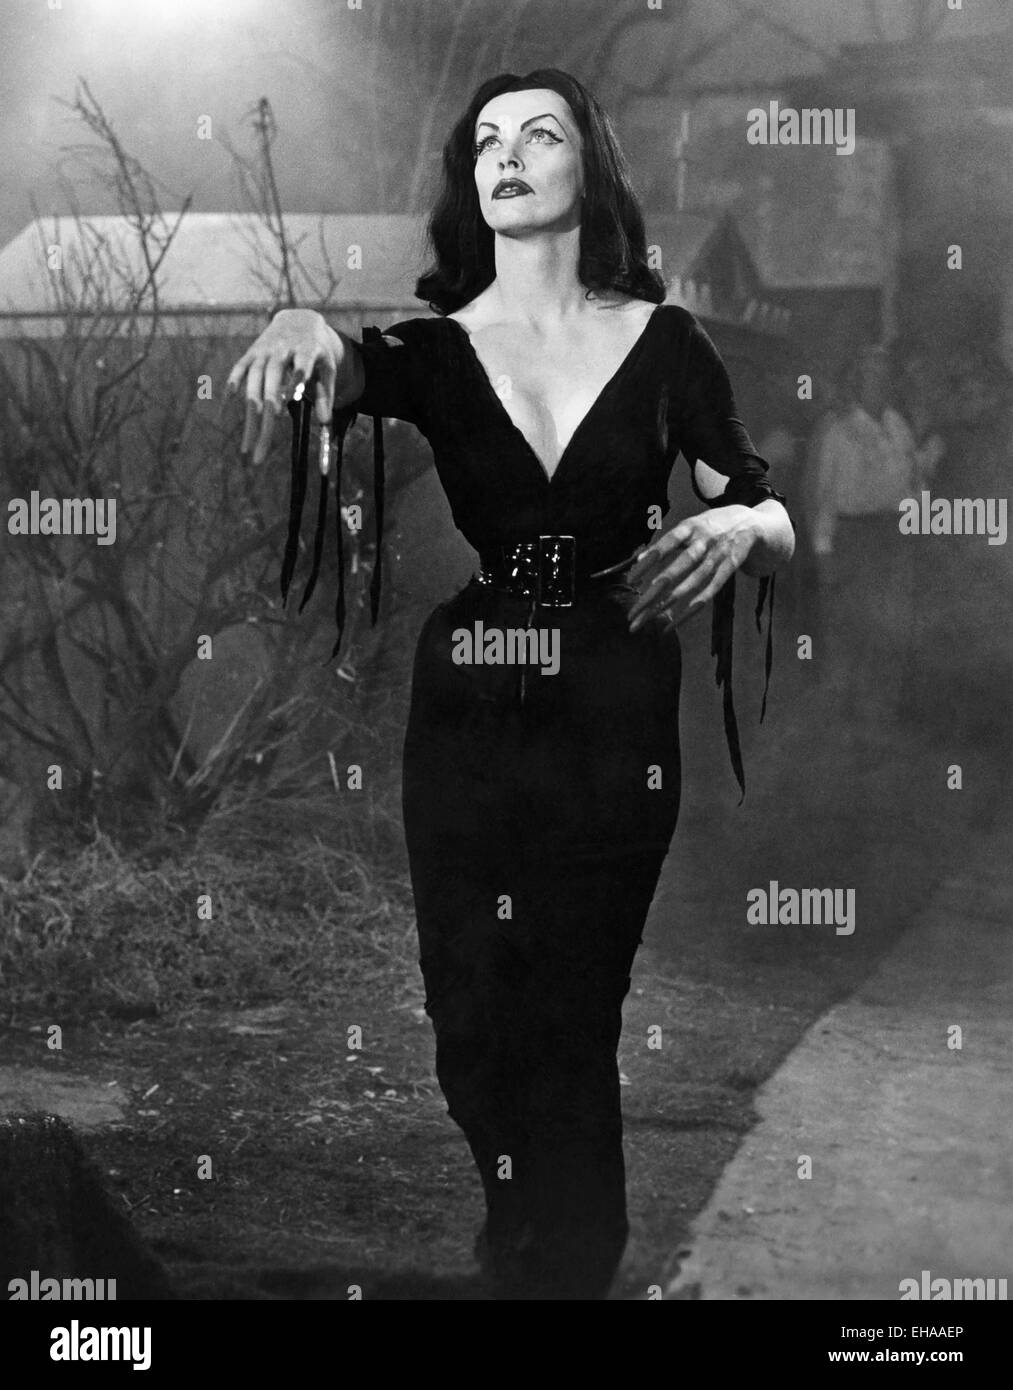 Vampira, on-set of the Film 'Plan 9 From Outer Space', 1959 - Stock Image